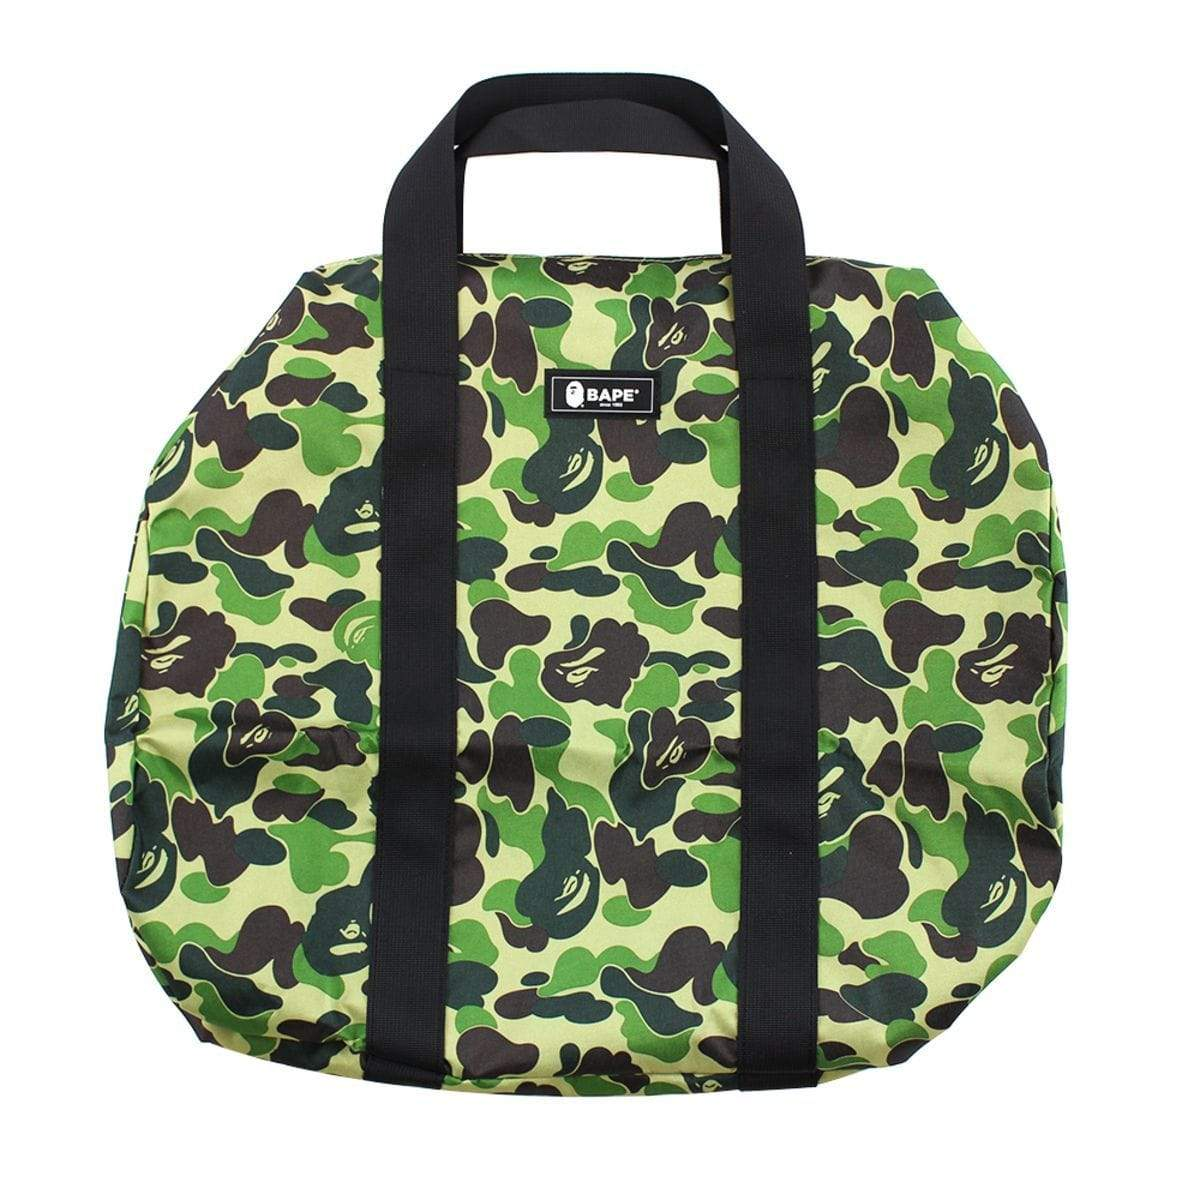 Bape ABC Green Camo Duffle Bag